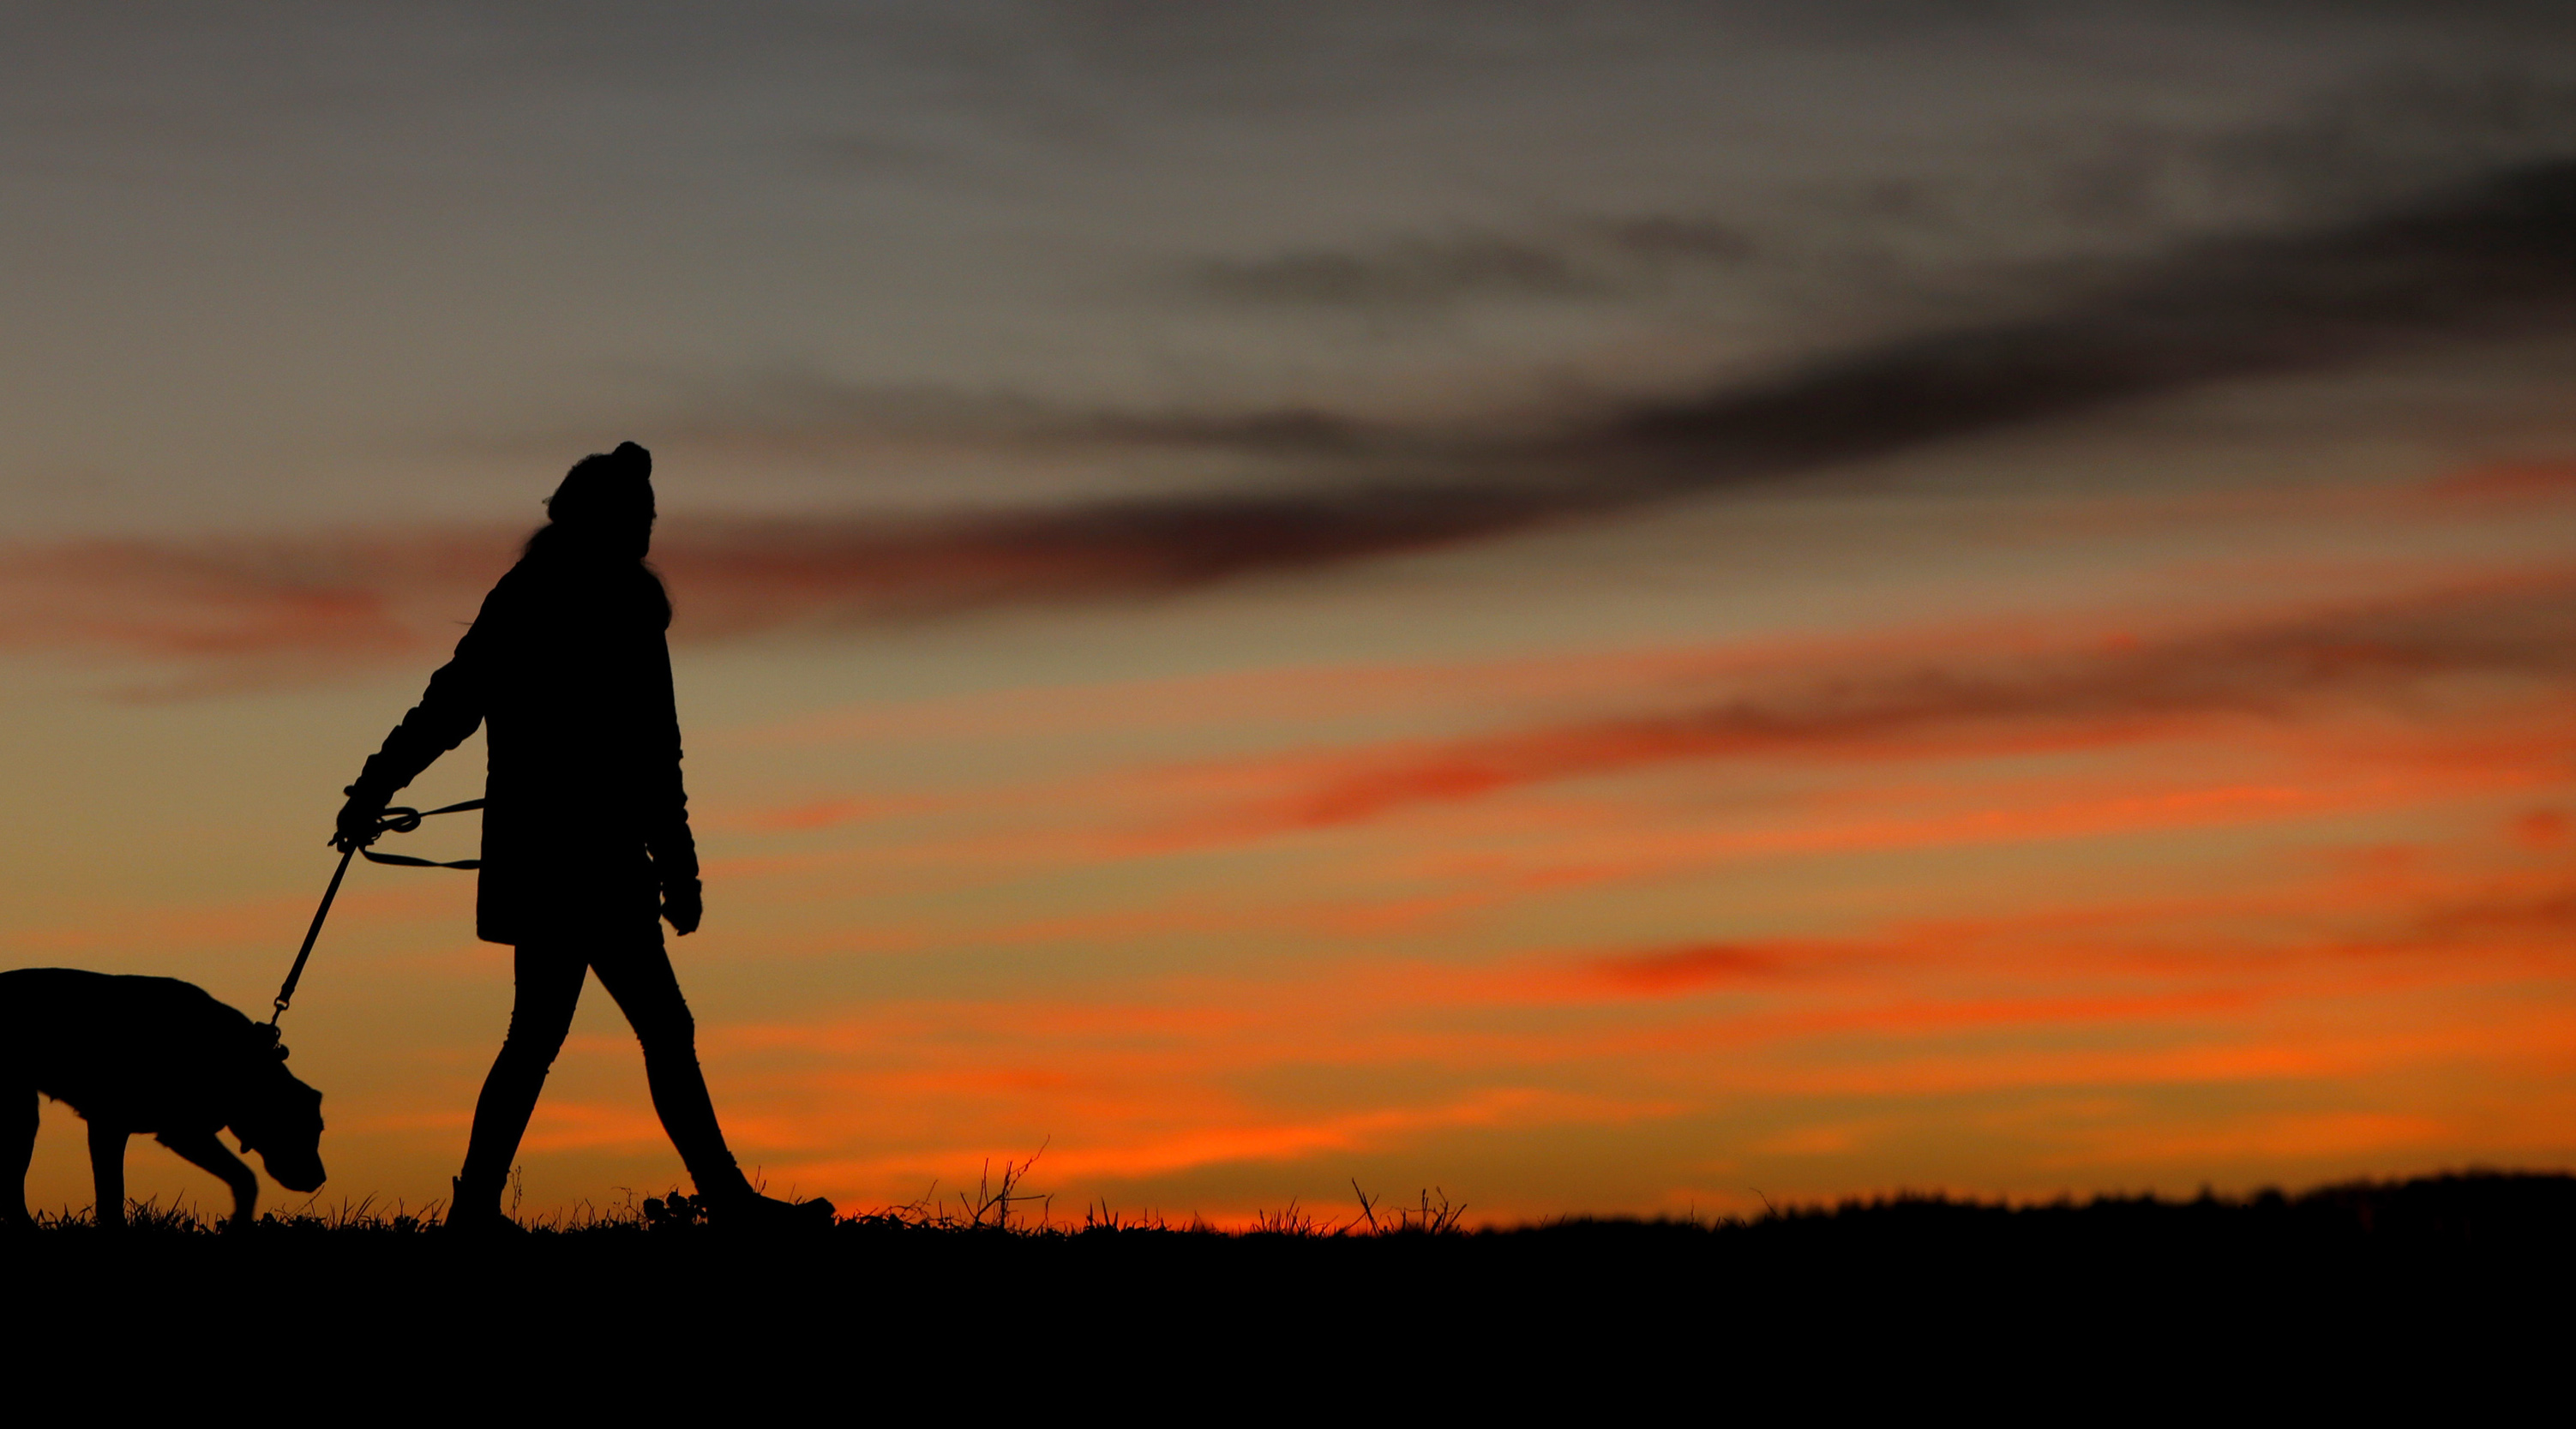 A woman walking her dog is silhouetted against the sky at sunset in Pflaumdorf westward of Fuerstenfeldbruck, Germany, December 5, 2015. REUTERS/Michaela Rehle - RTX1XBLX